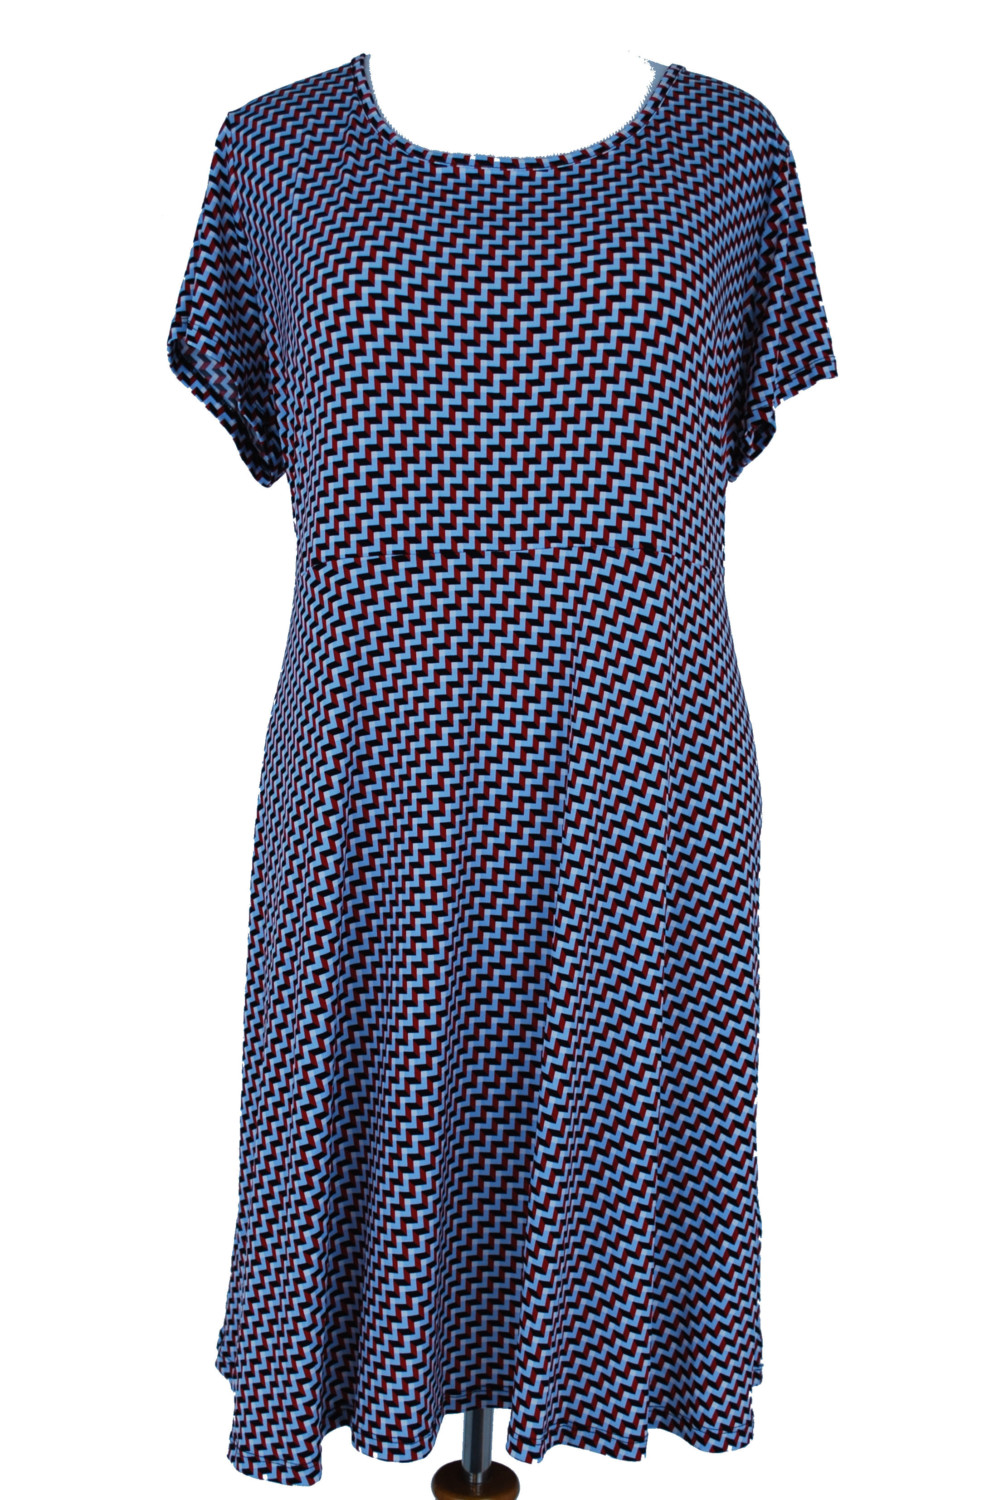 Michael Kors Dress – Original Retail: $110, CWS: $28